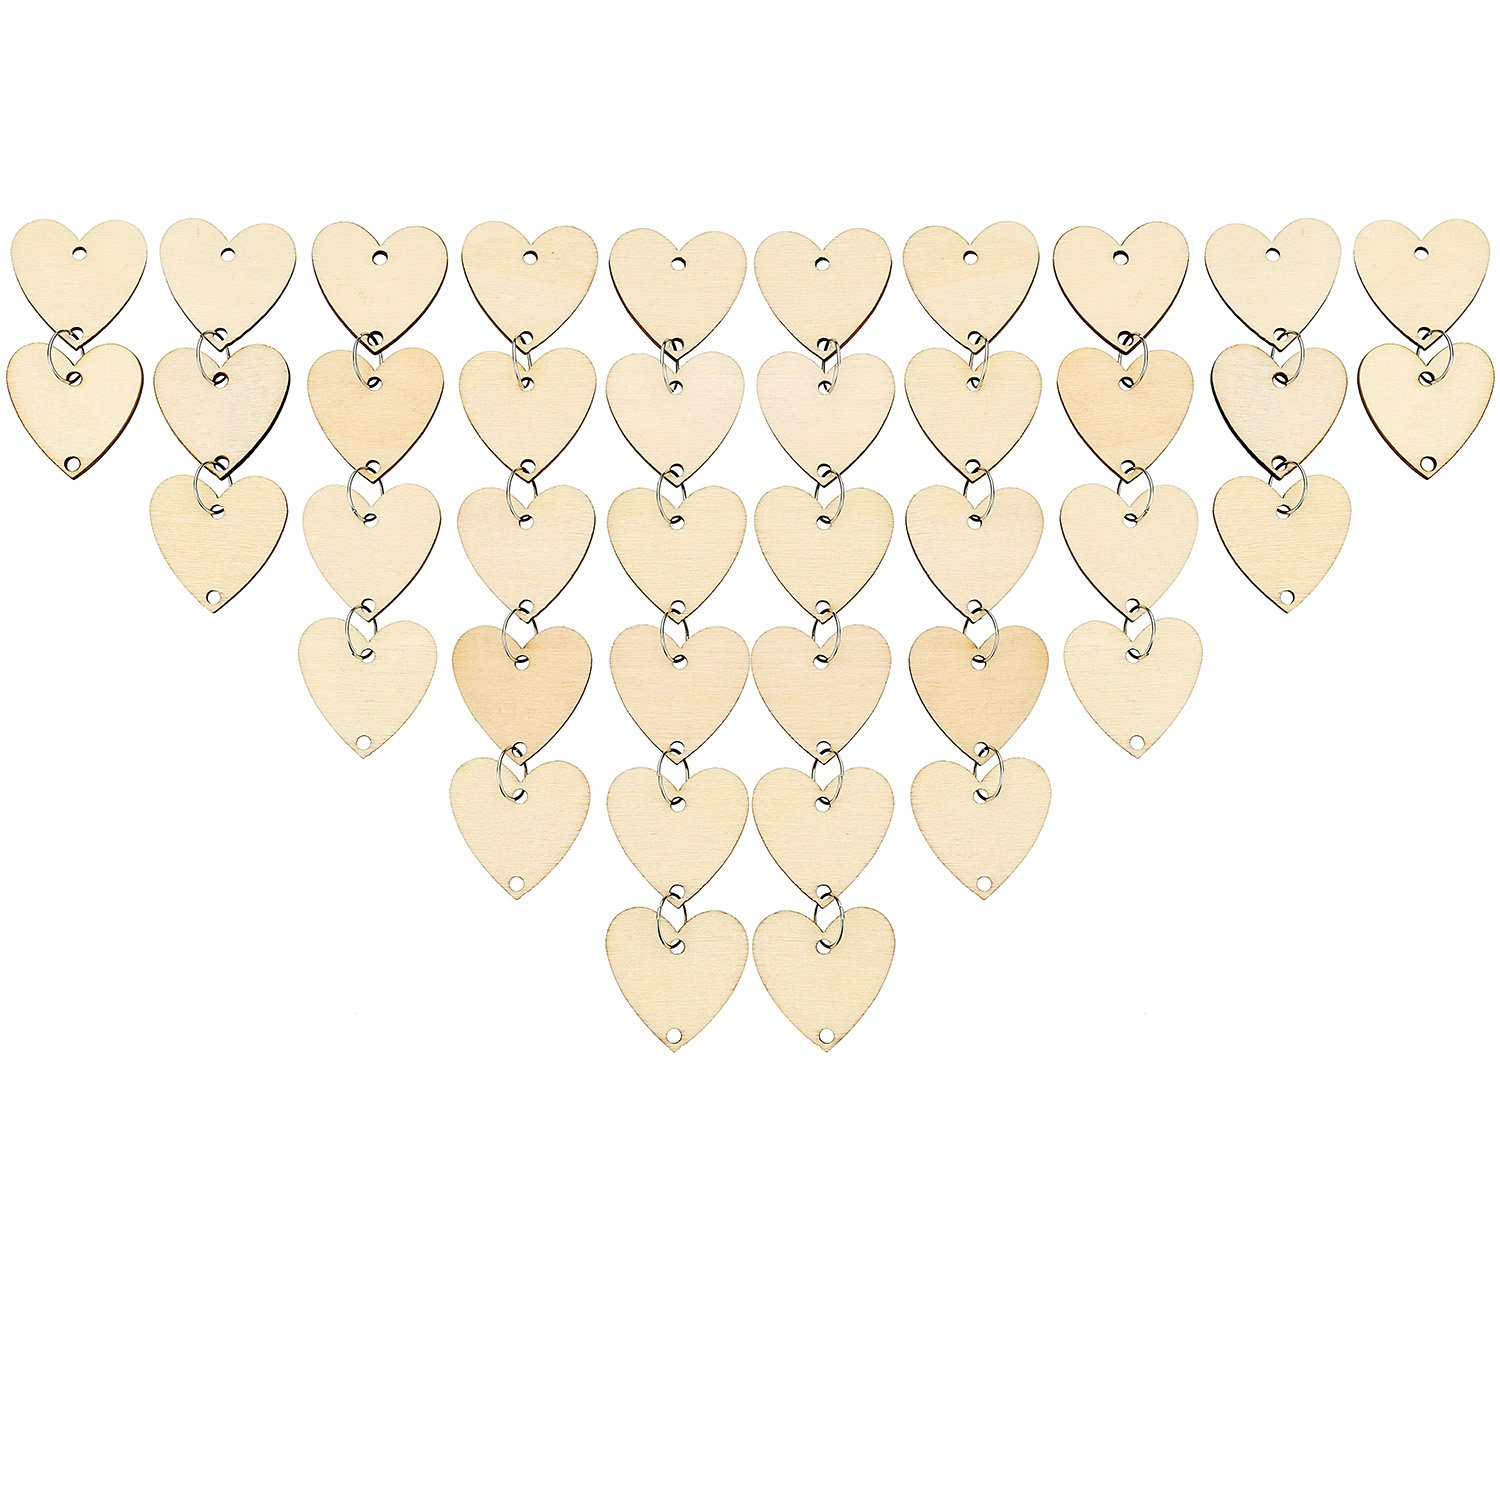 Bememo 100 Pieces Heart Shaped Wooden Discs Wood Tags with 2 Holes and 100 Pieces Rings for Birthday Board Calendar DIY Crafts Size 1